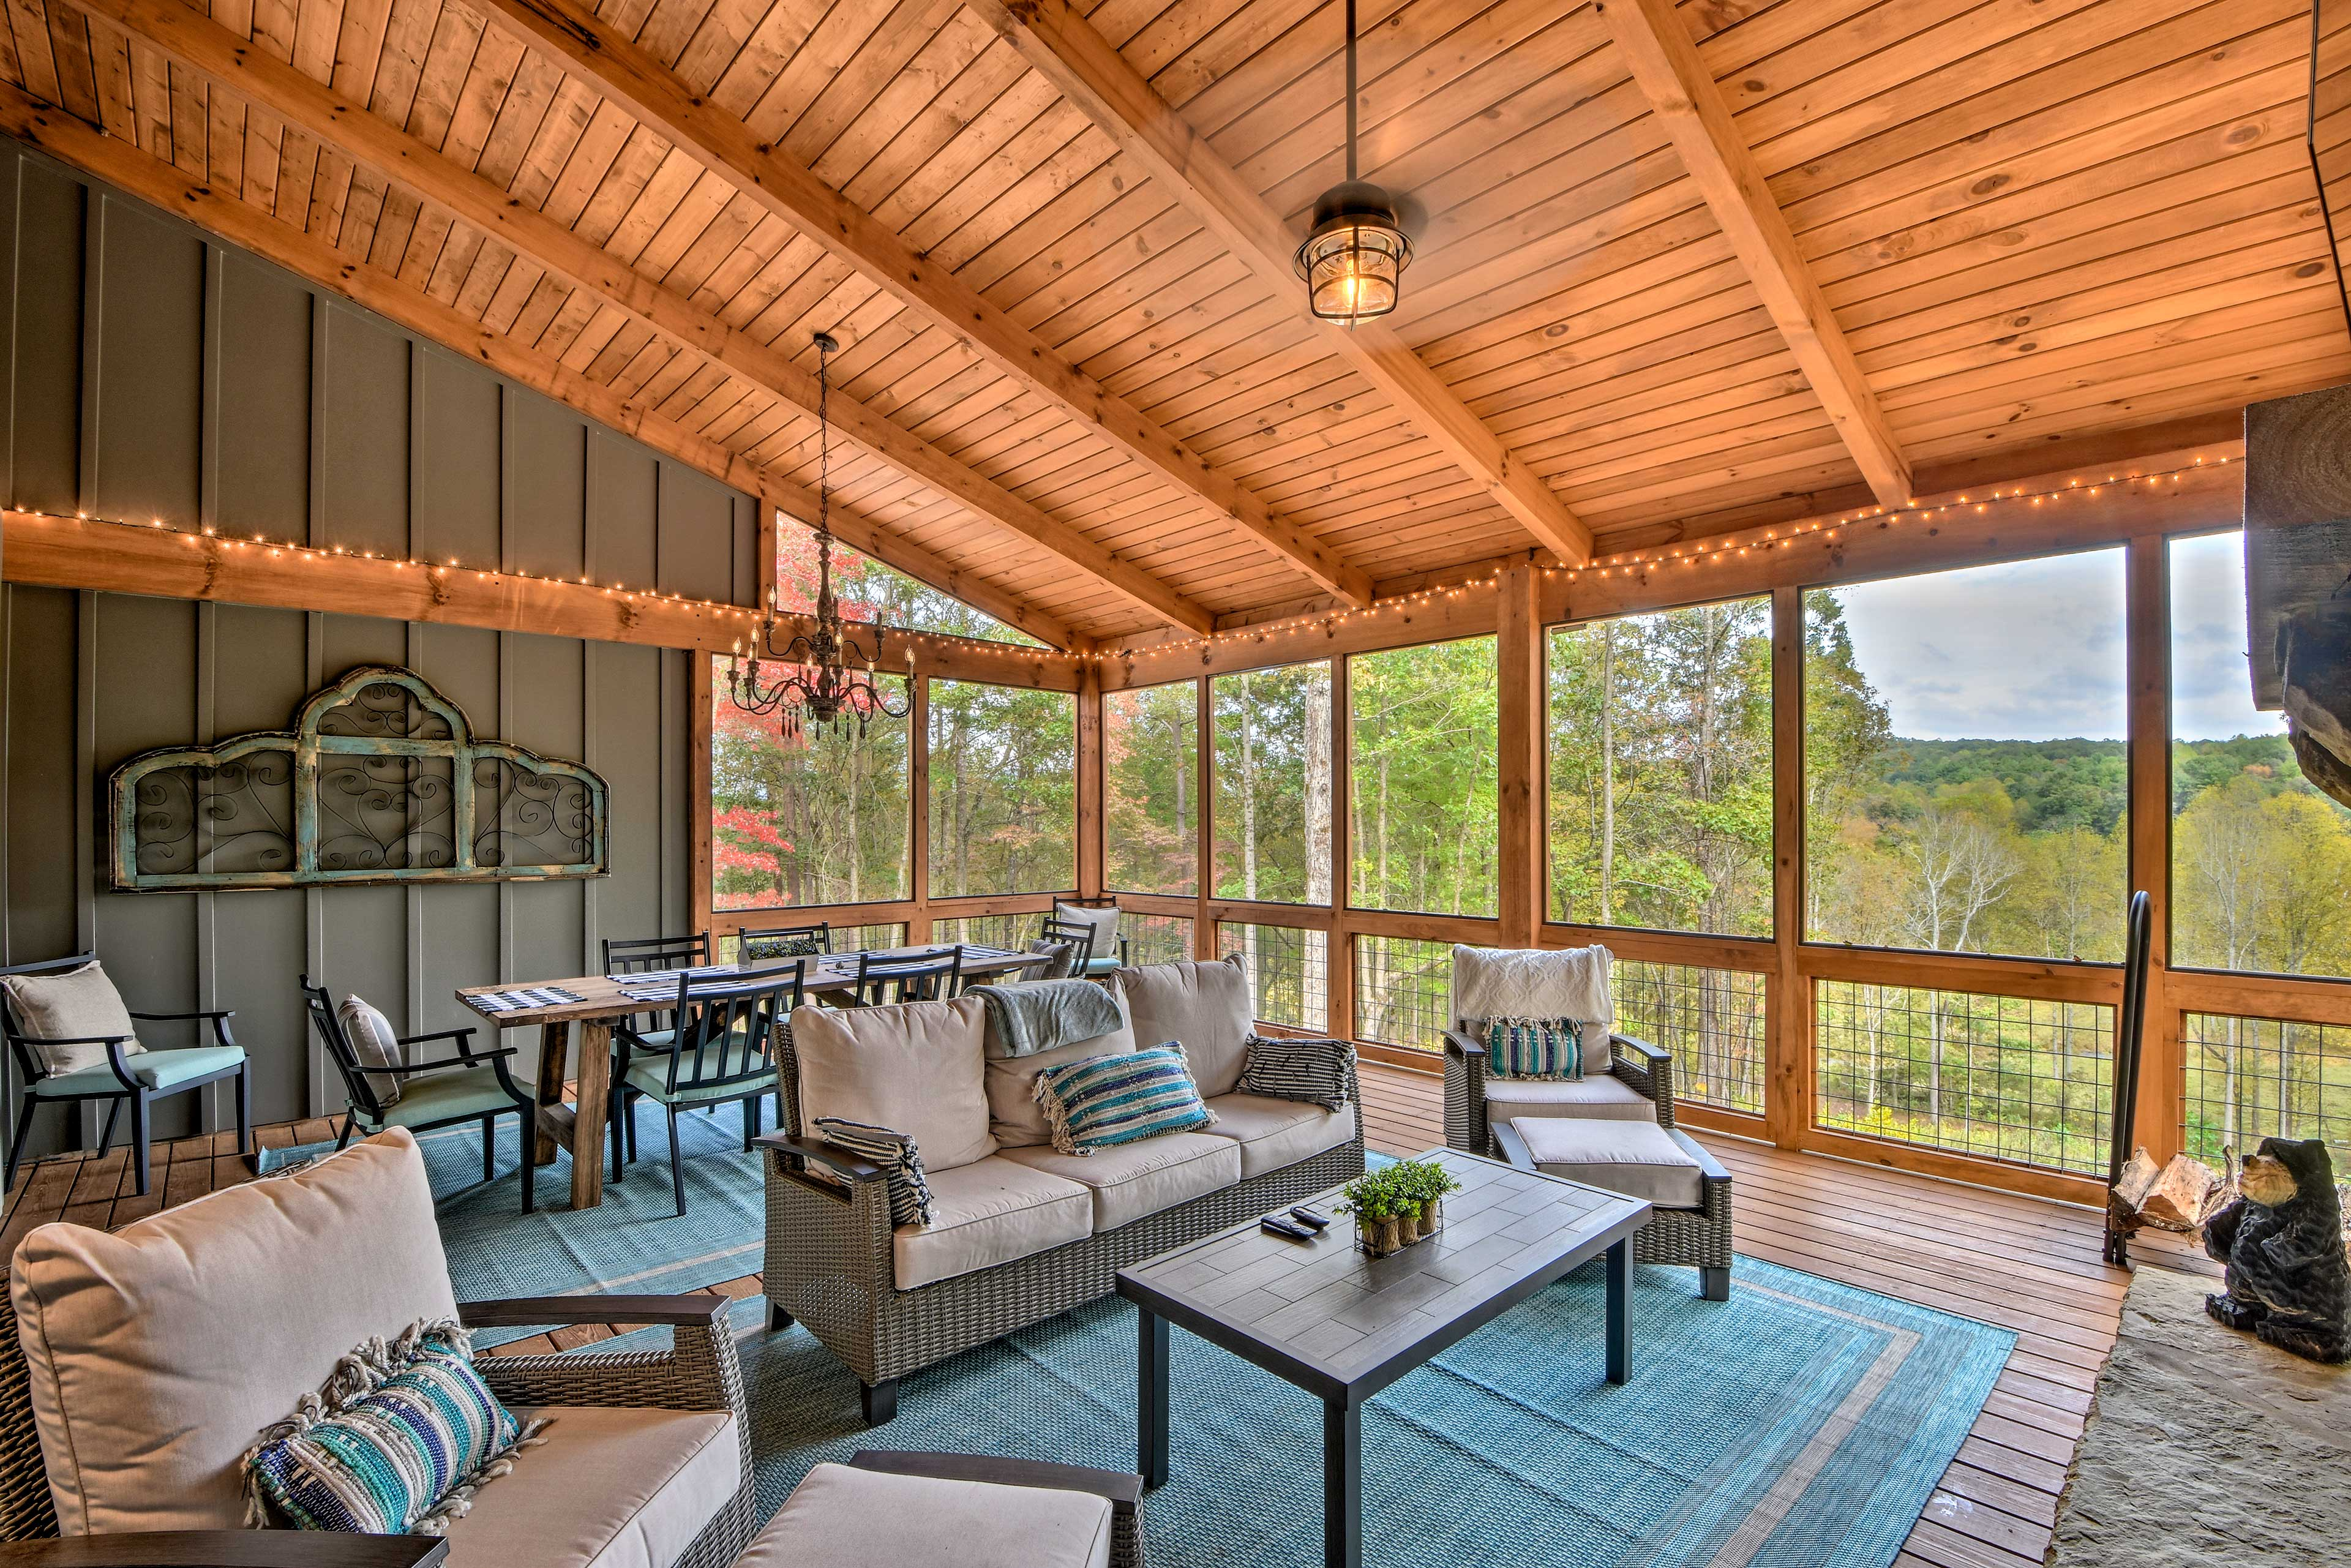 The porch has a wood-burning fireplace and a flat-screen TV!